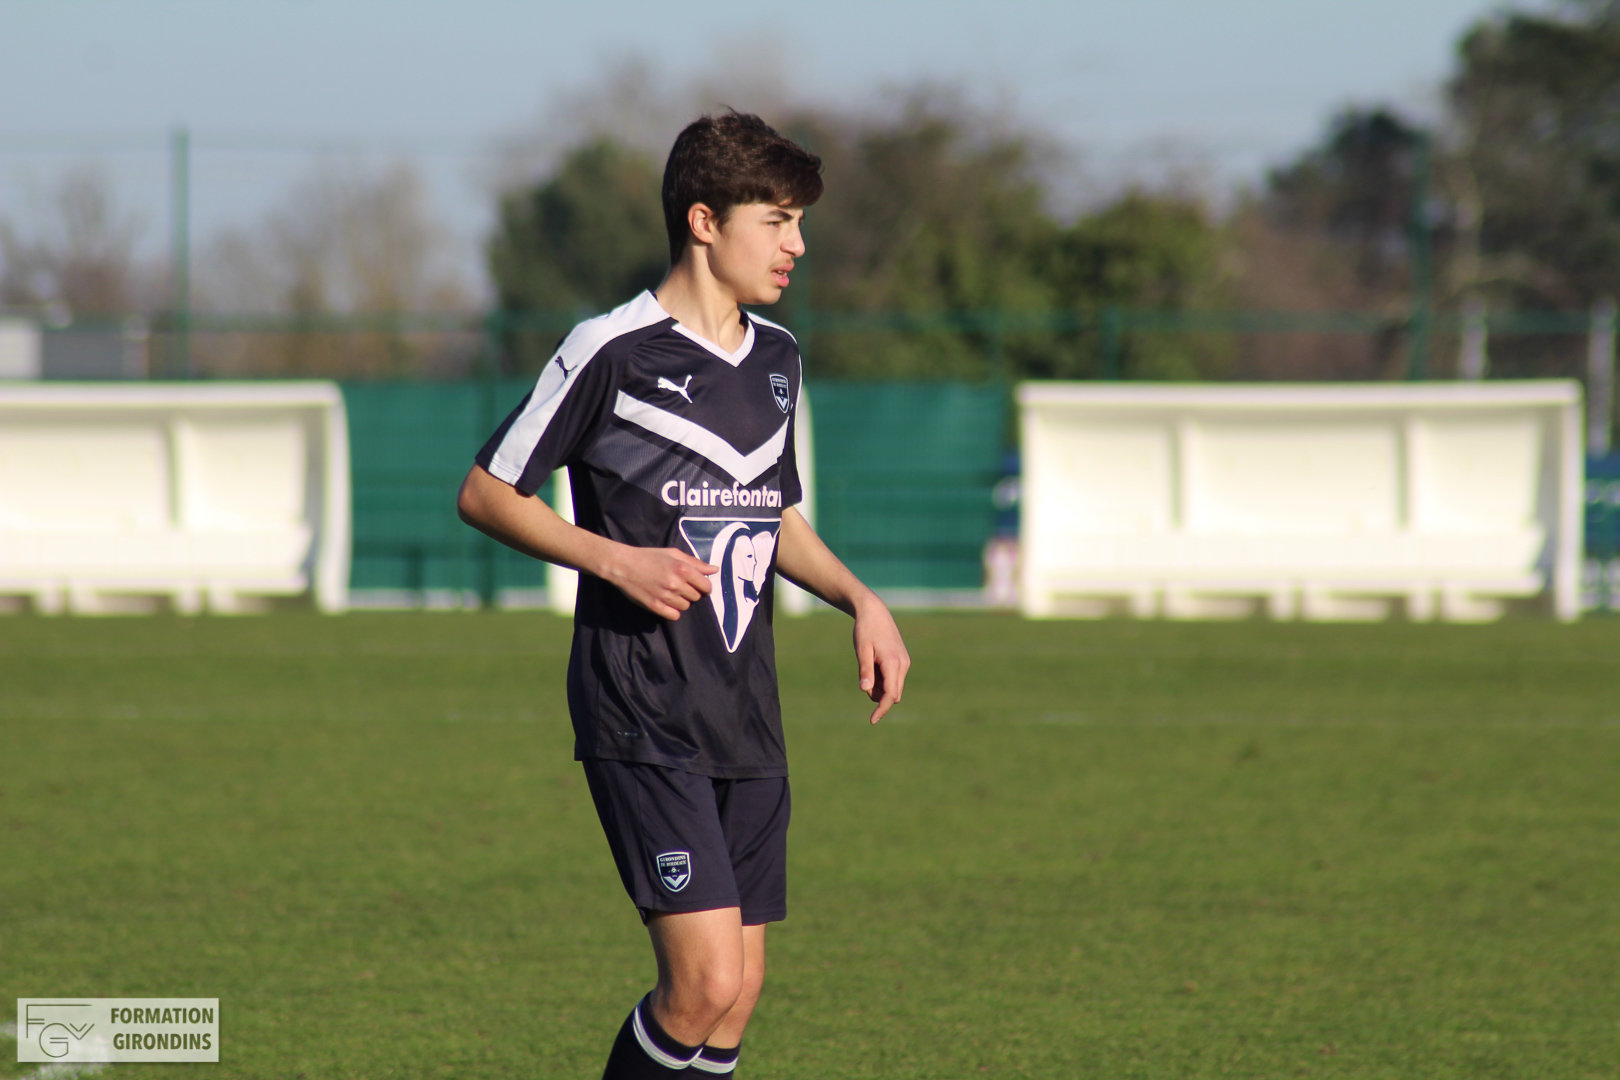 Cfa Girondins : Eloigner un concurrent direct - Formation Girondins